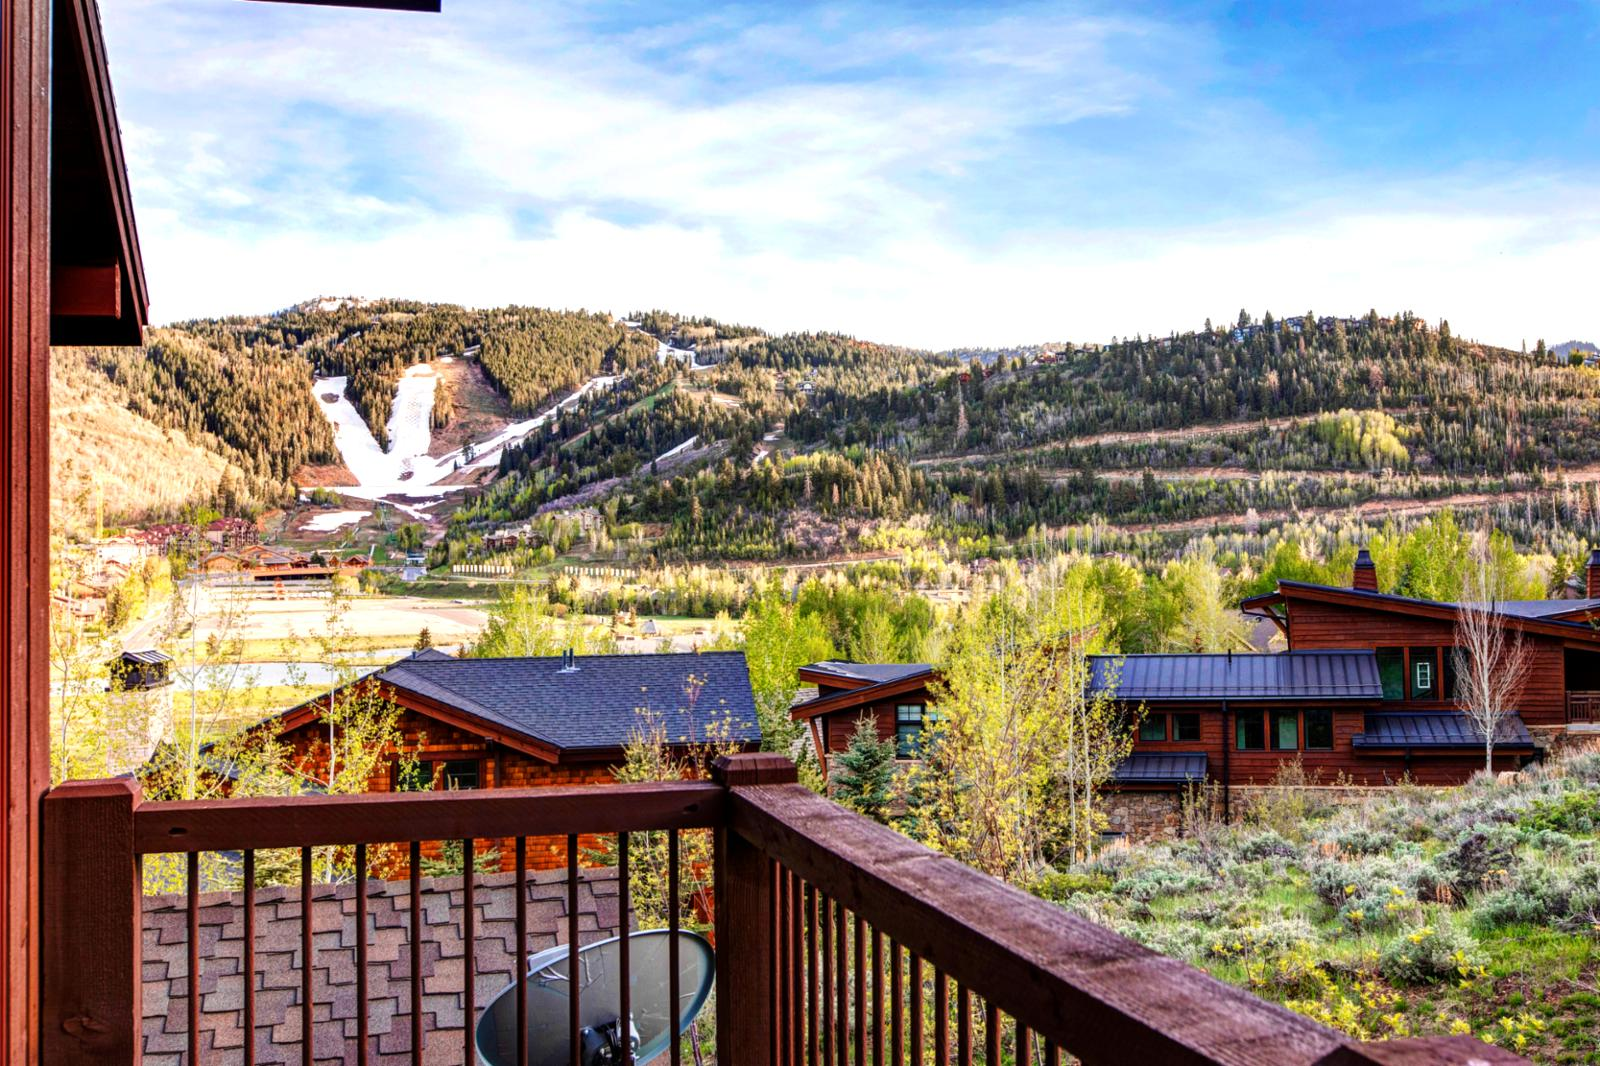 The ski runs and biking trails are here for you to explore!